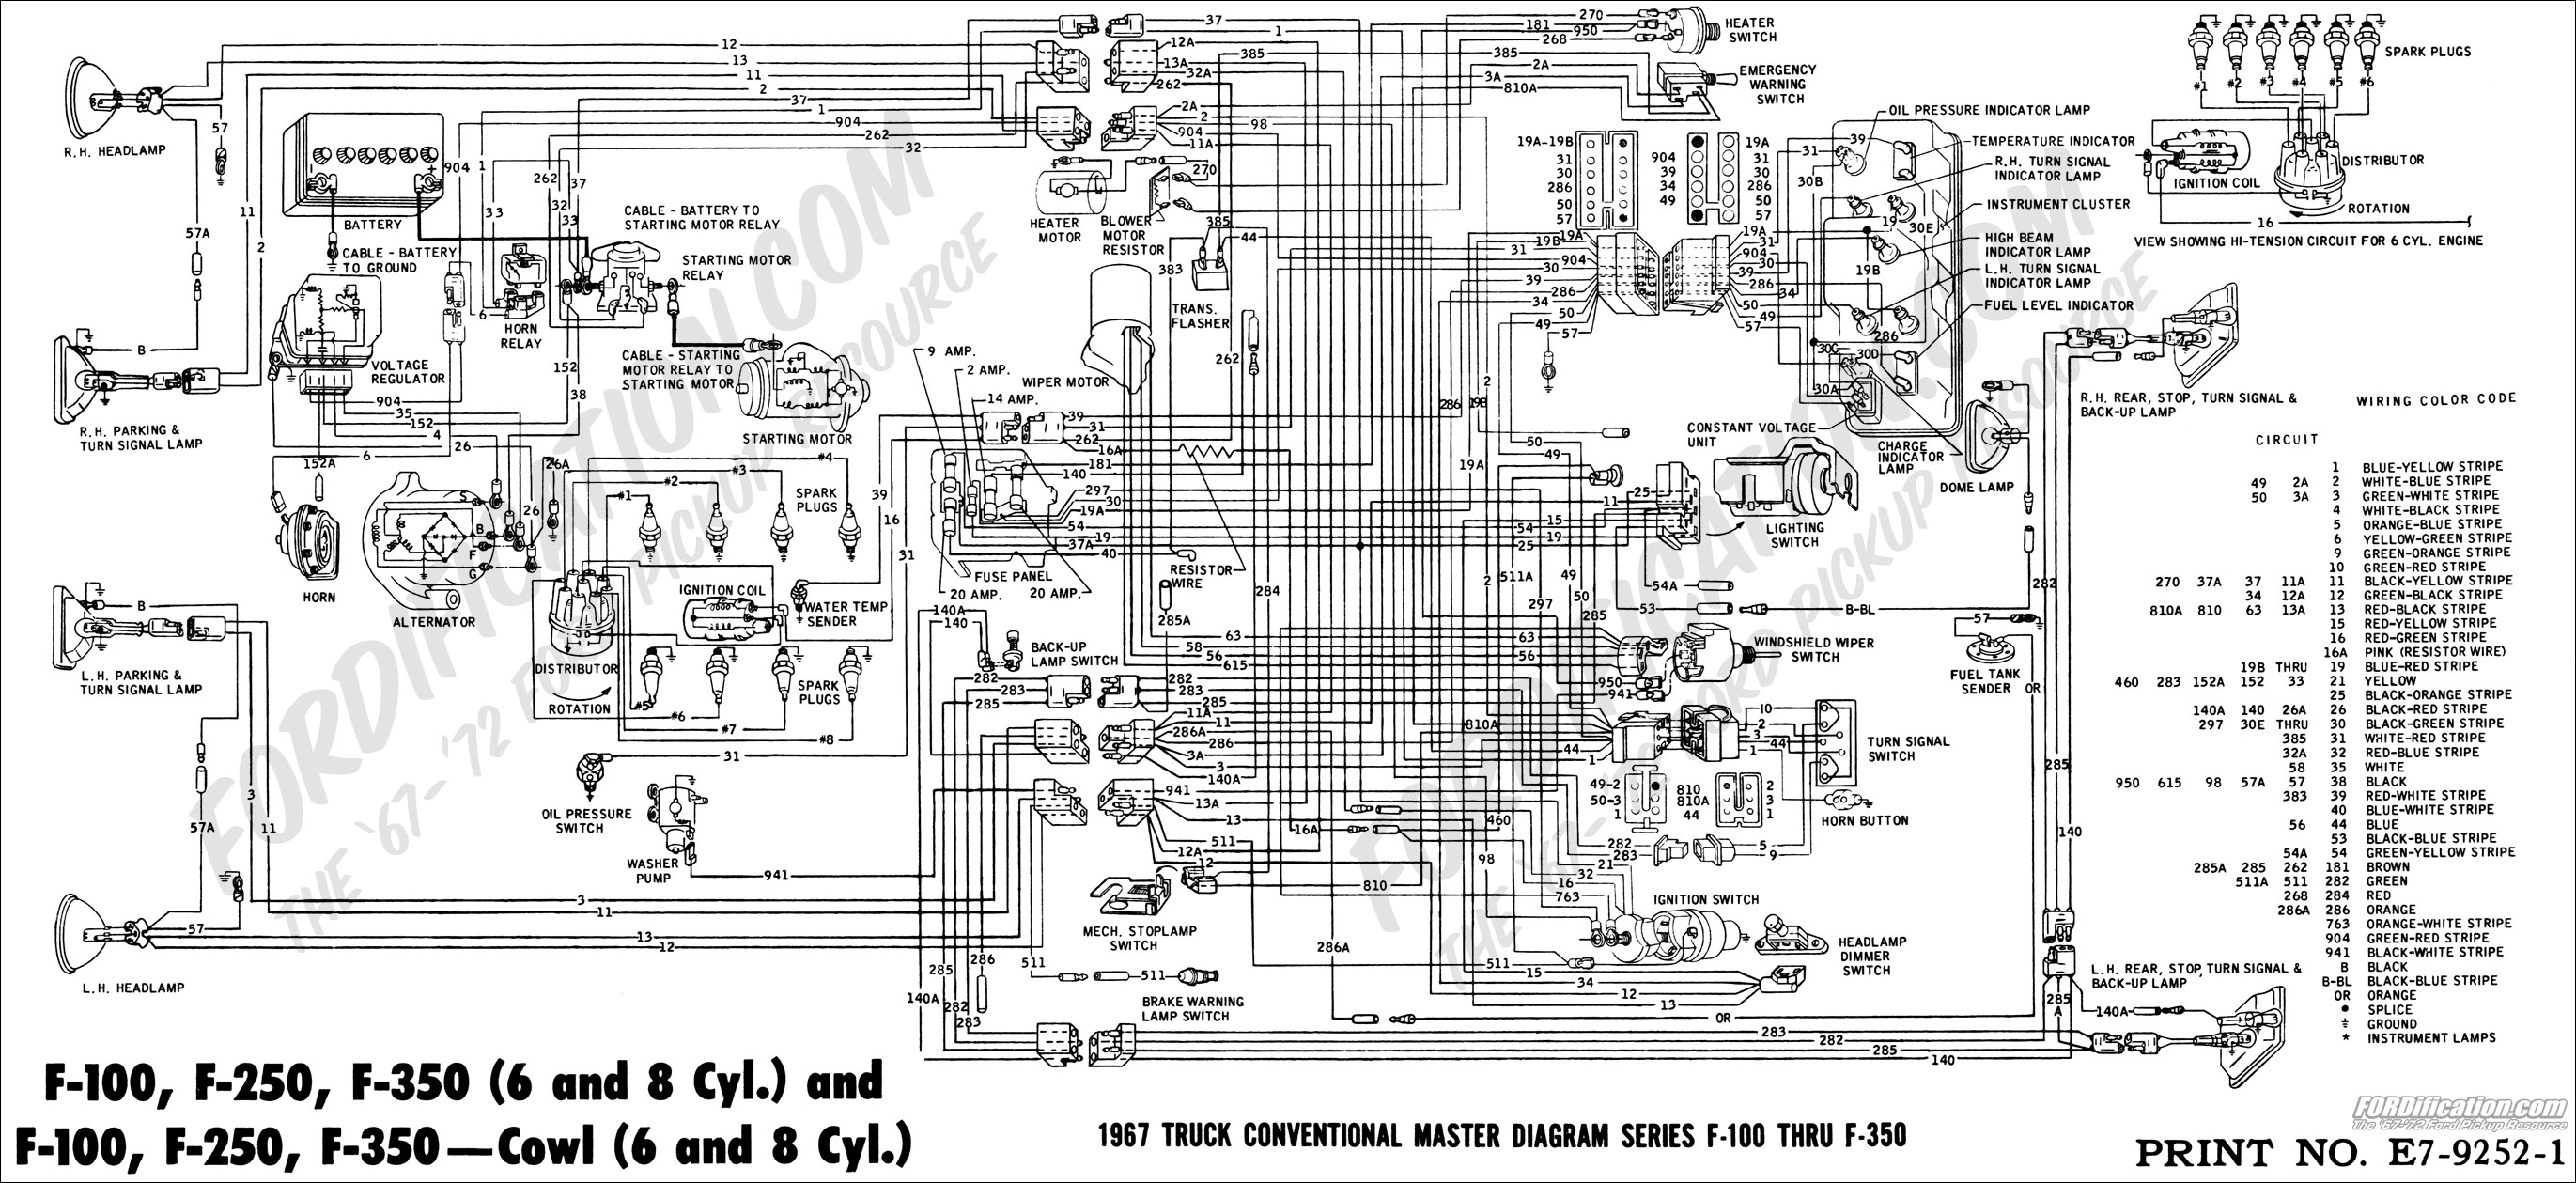 67masterdiagram 1999 ford radio wiring diagram turcolea com 1999 ford f350 radio wiring diagram at gsmportal.co